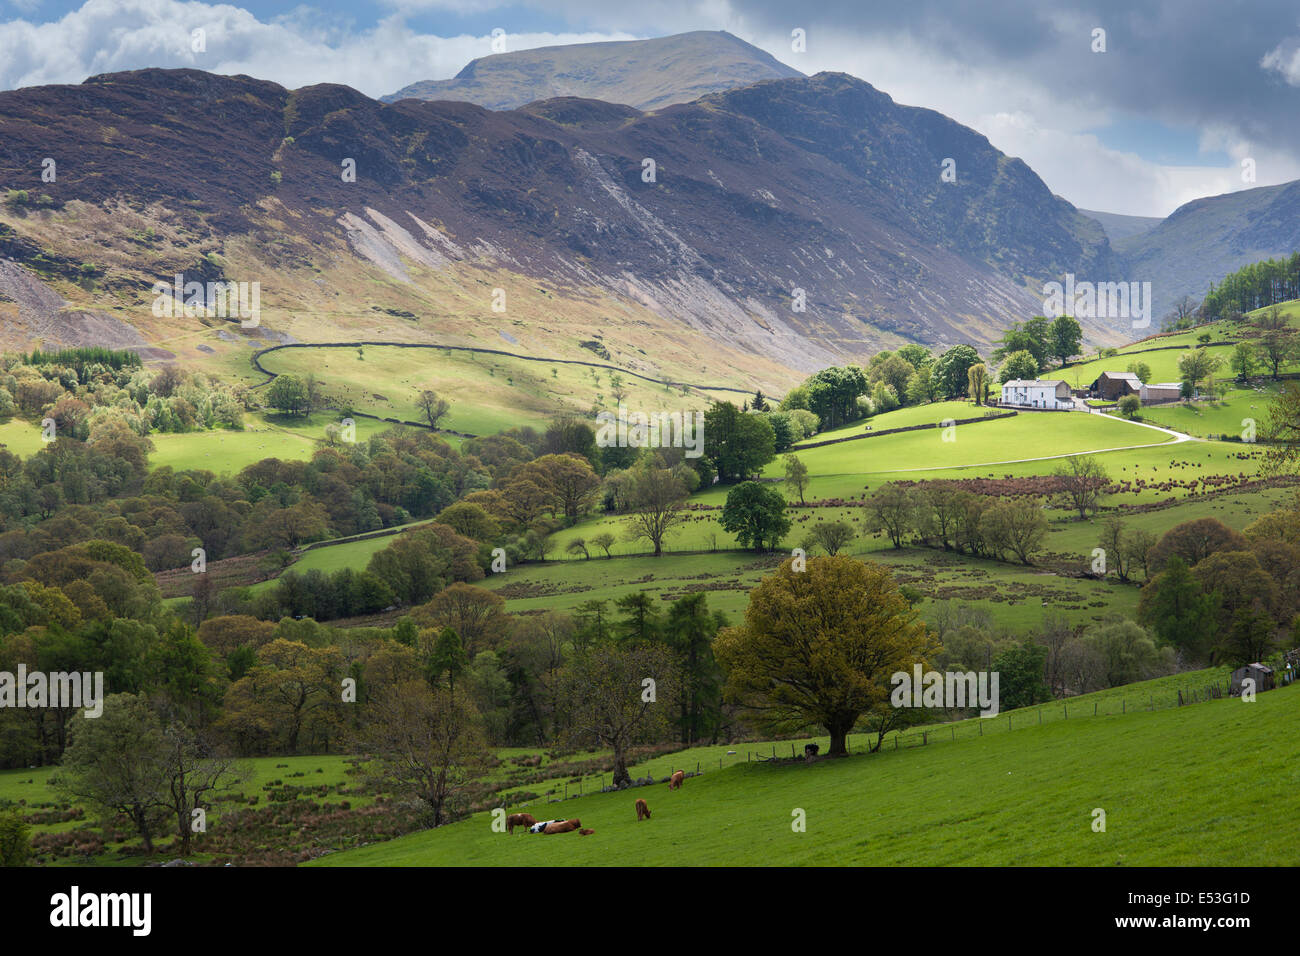 View through Newlands Valley towards the peak of Catbells, Lake District, Cumbria, UK - Stock Image